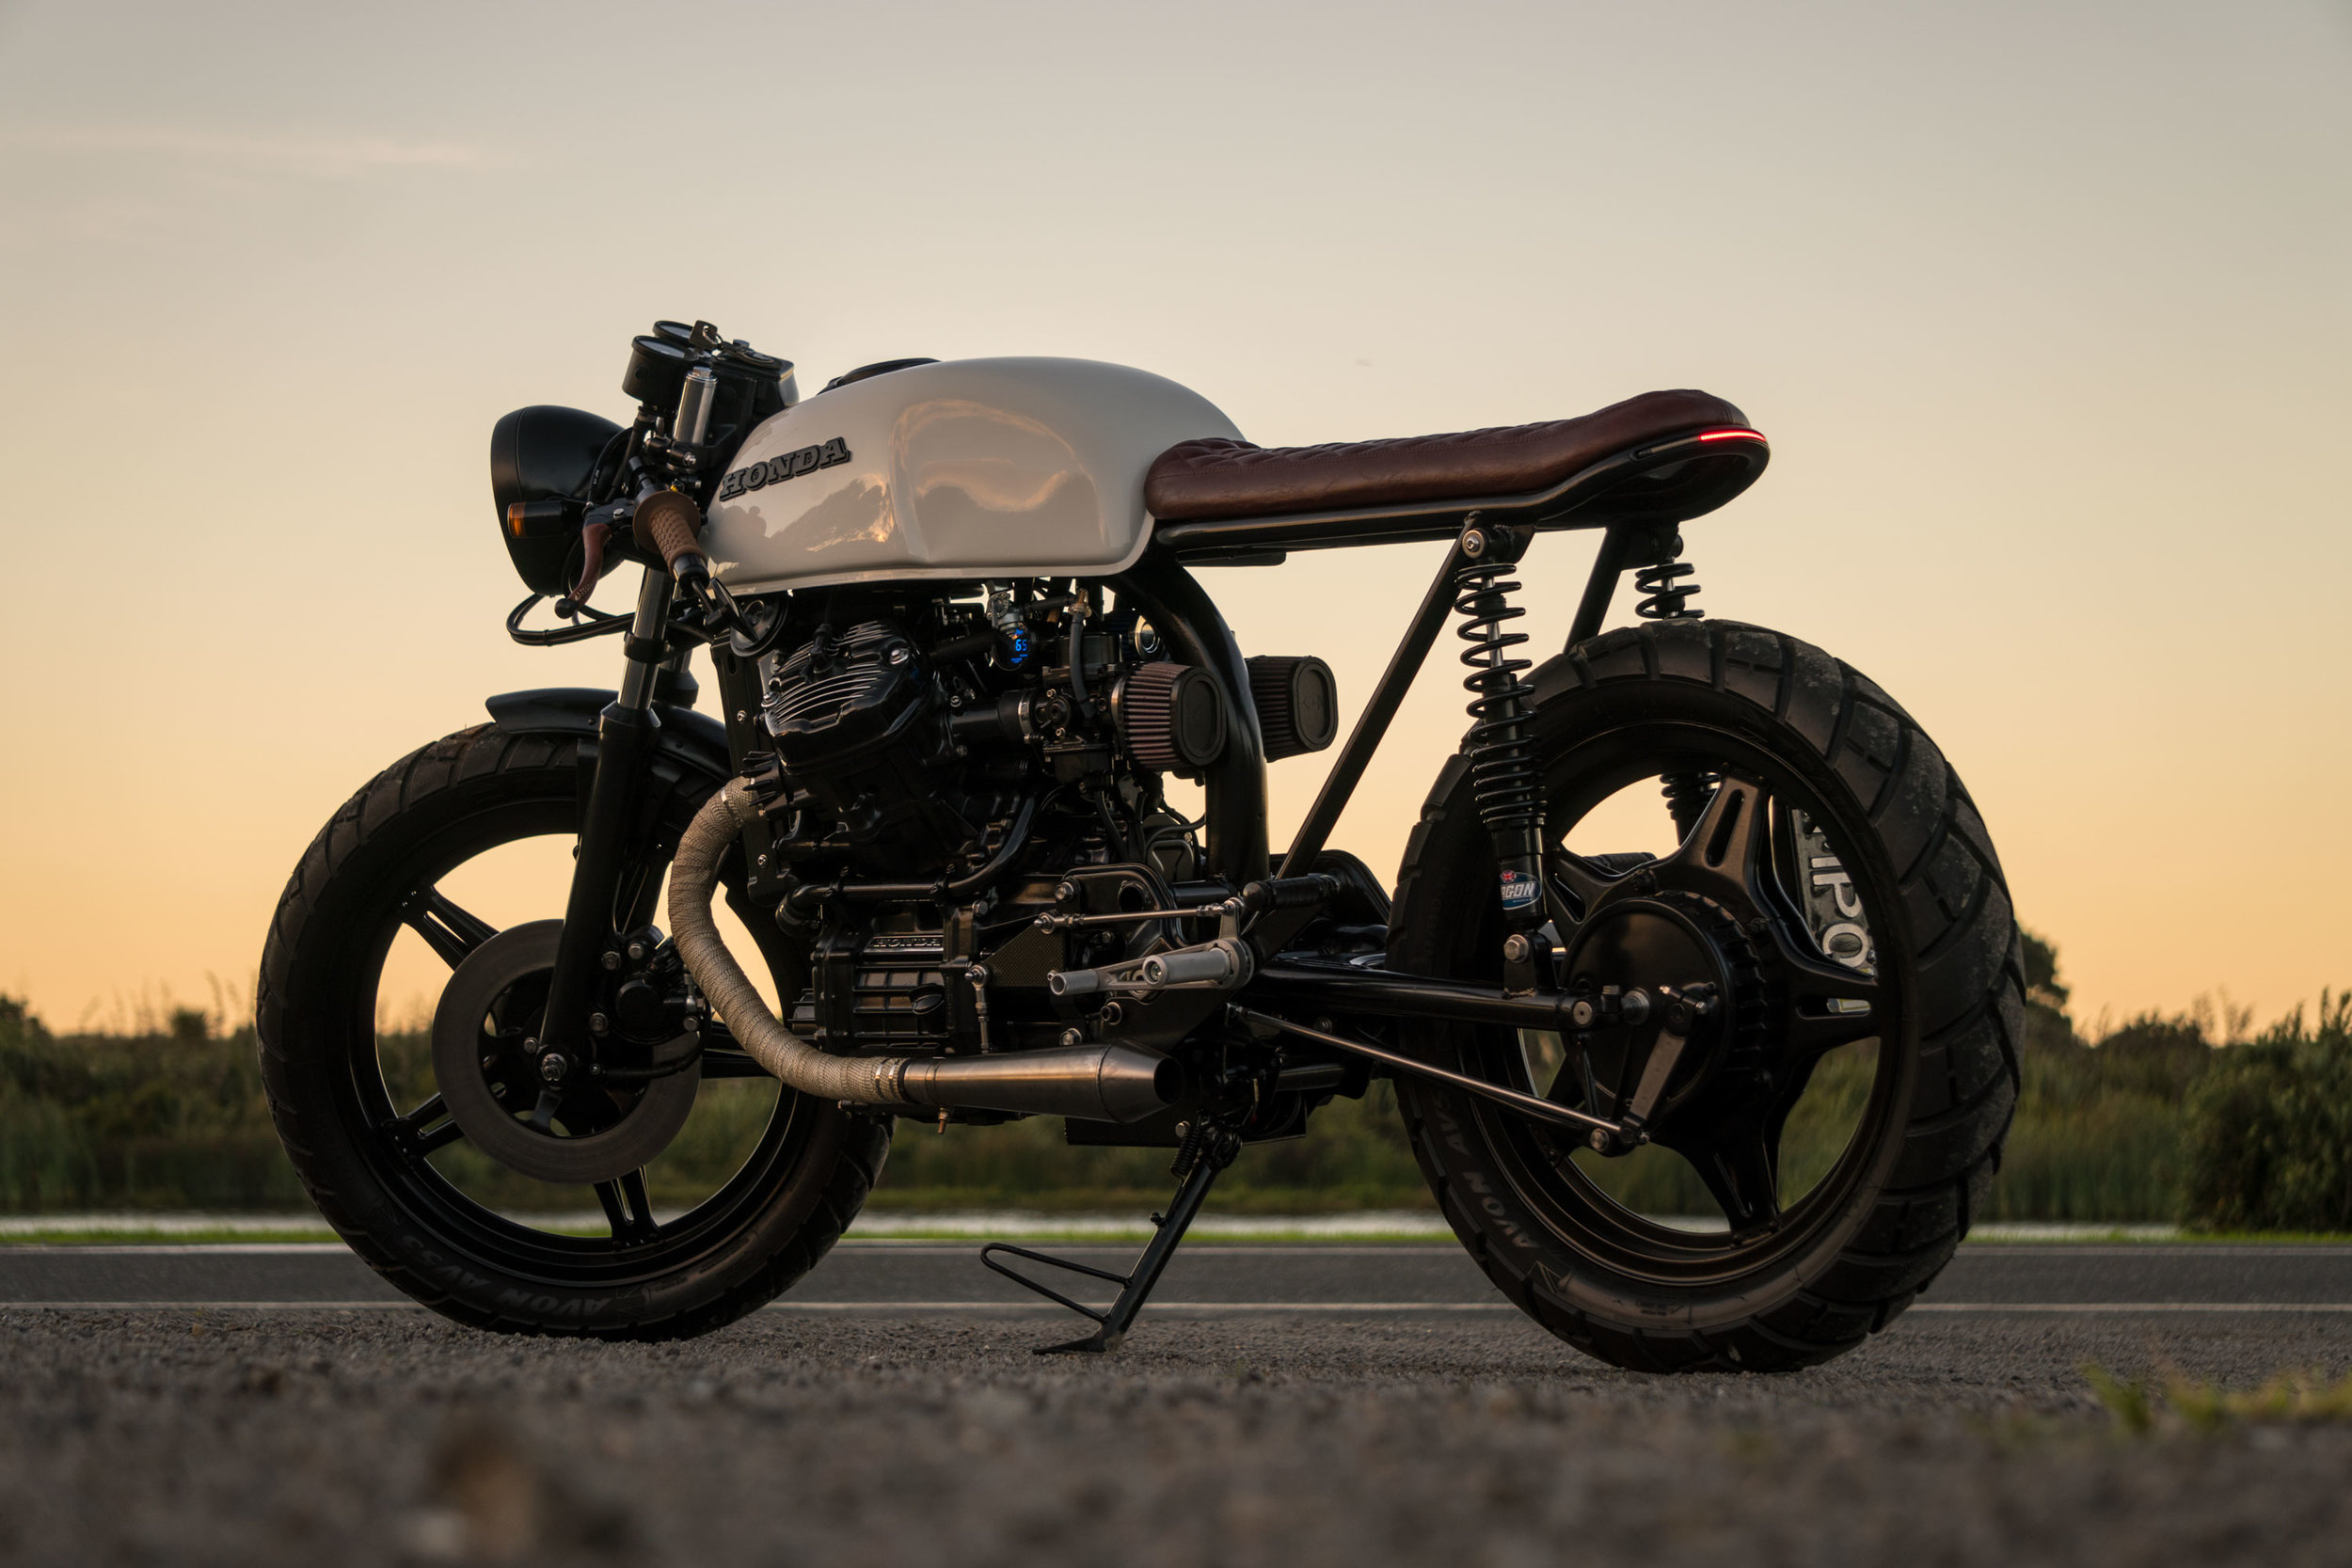 Top CX500 Cafe Racer Build — Will Nicholson RV38